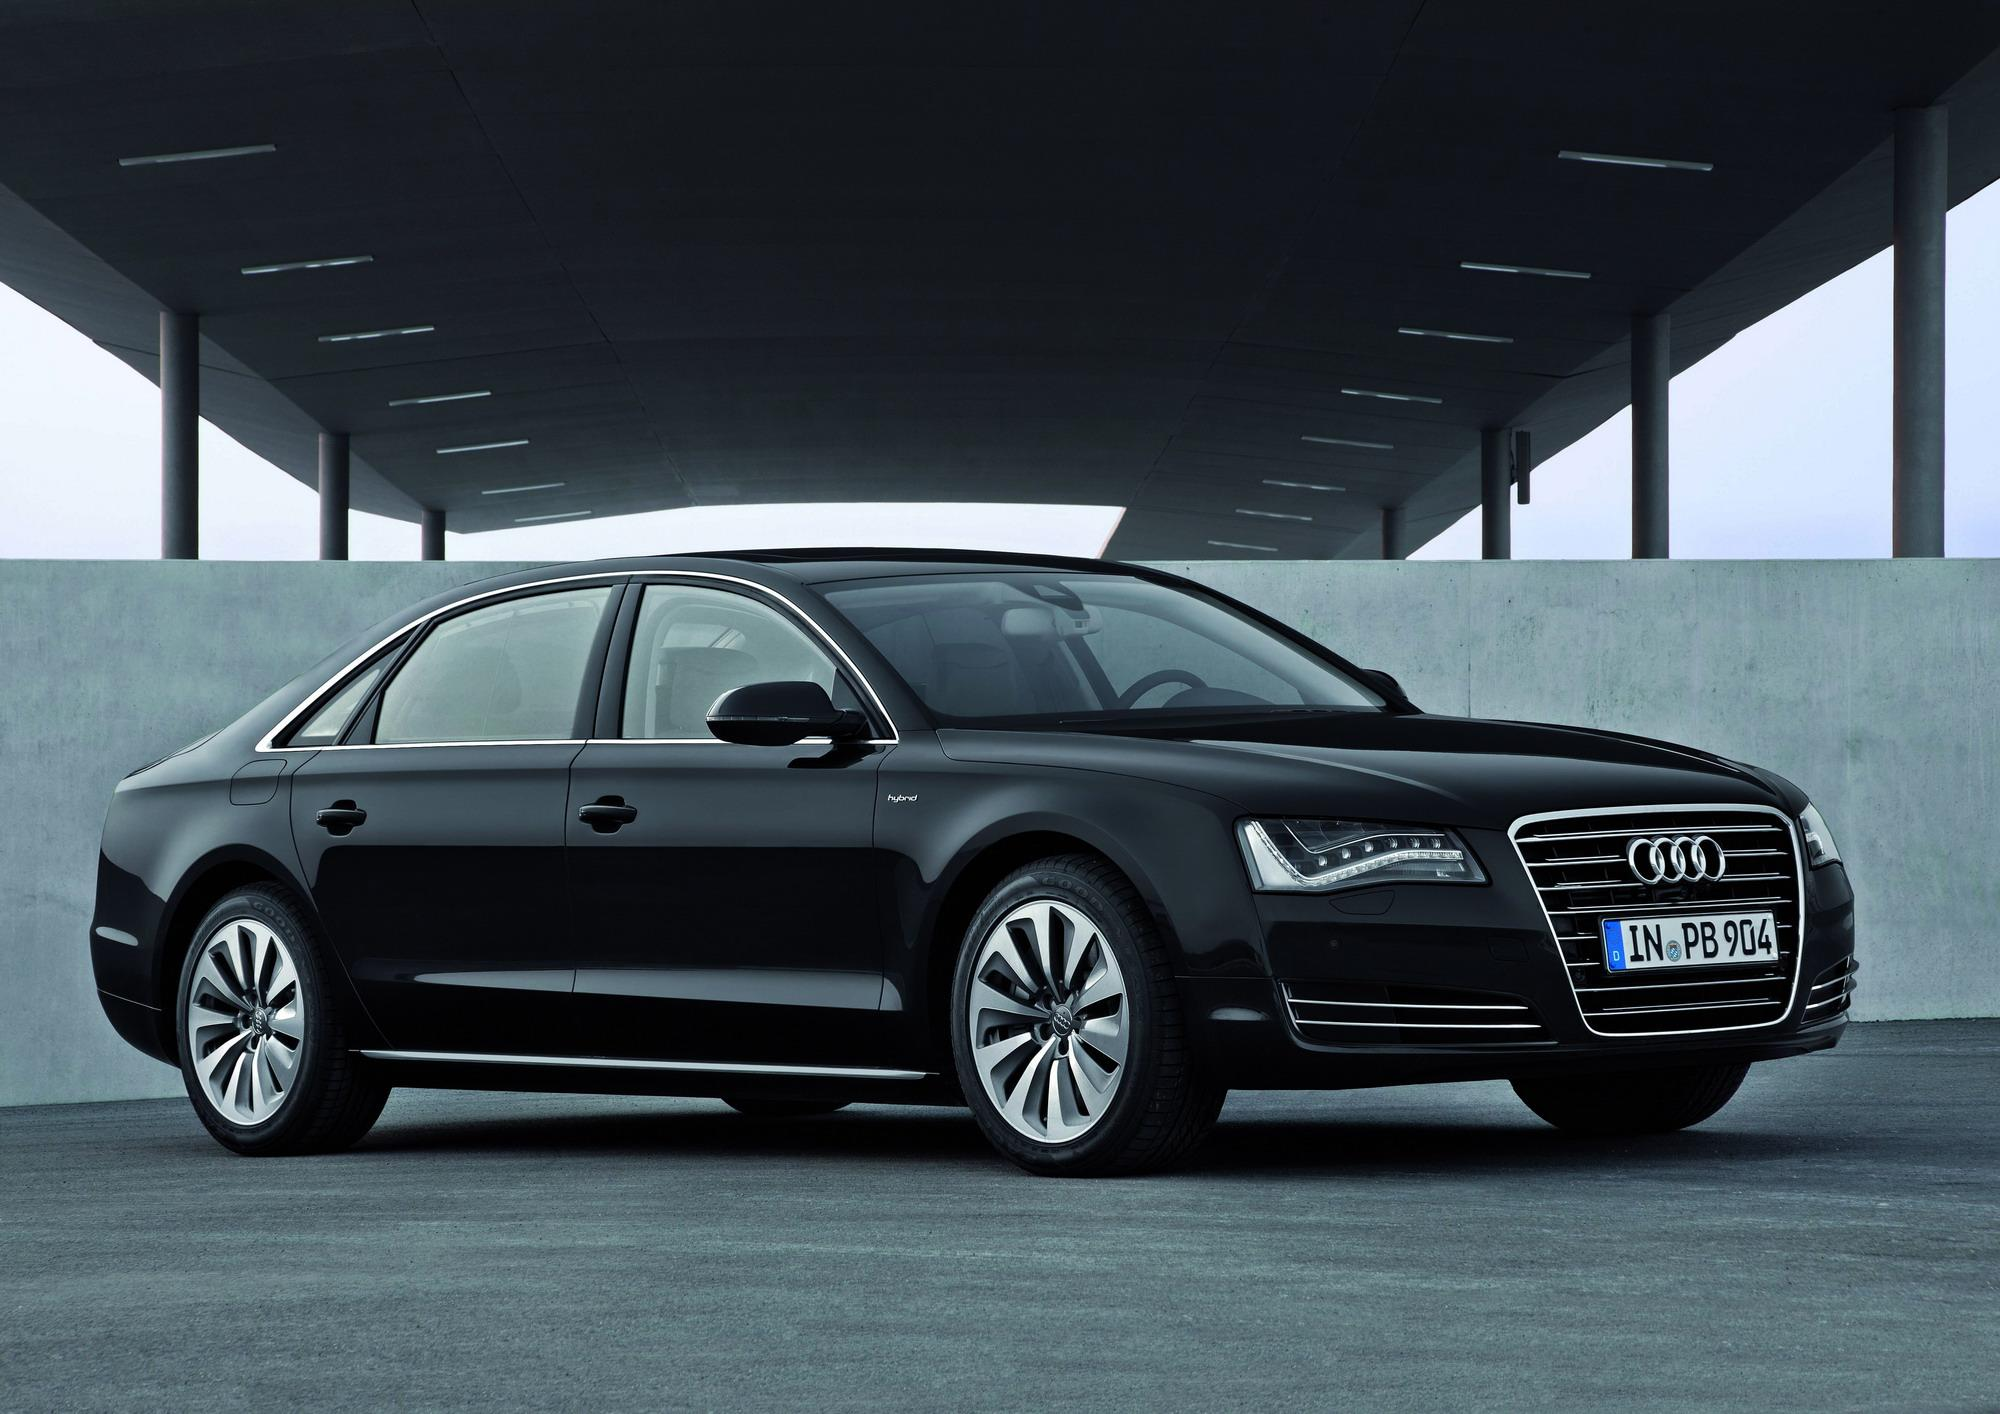 Performance Auto Body >> 2012 Audi A8 Hybrid Review - Top Speed